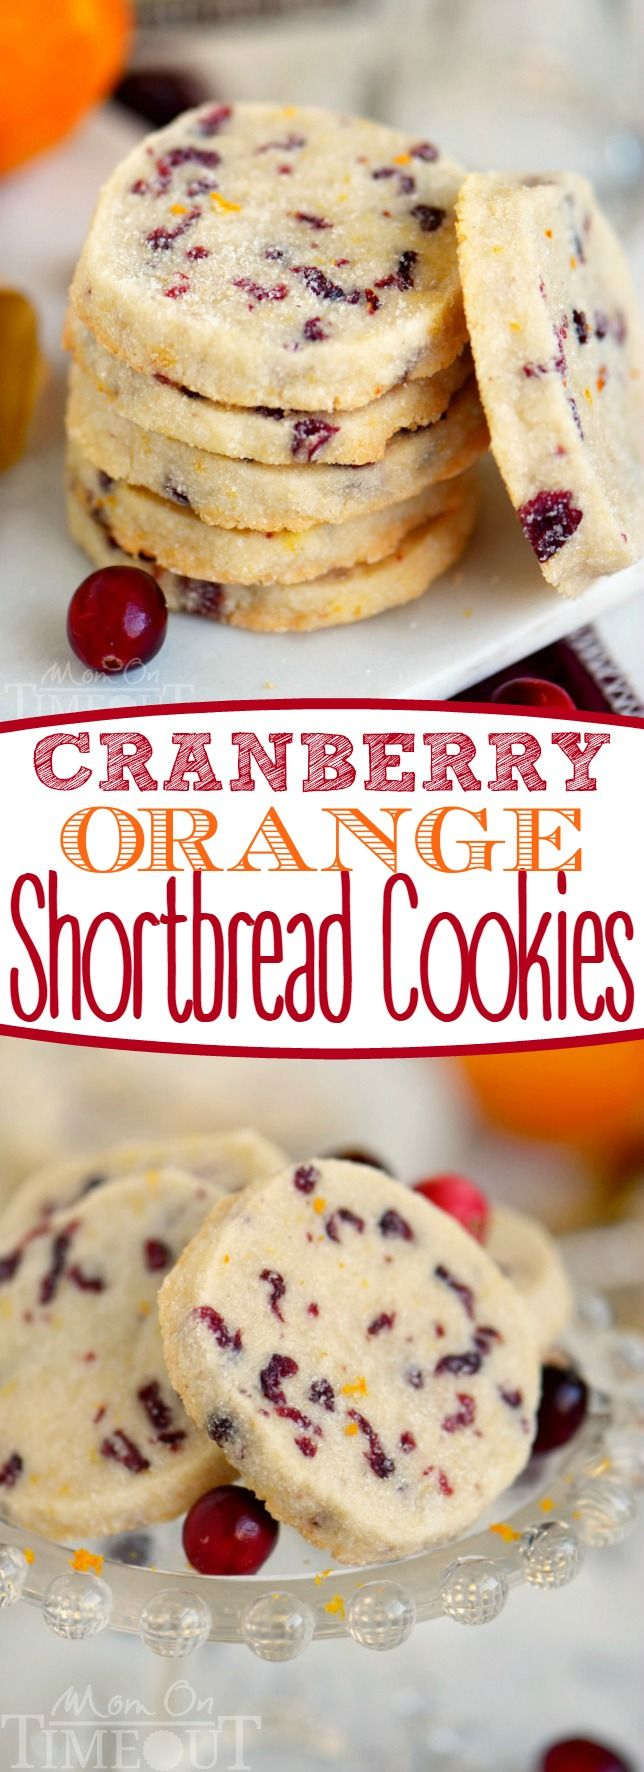 Cranberry Orange Shortbread Cookies combine two of my favorite holiday flavors in one easy to make cookie that will wow friends and family A delightfully easy cookie reci...